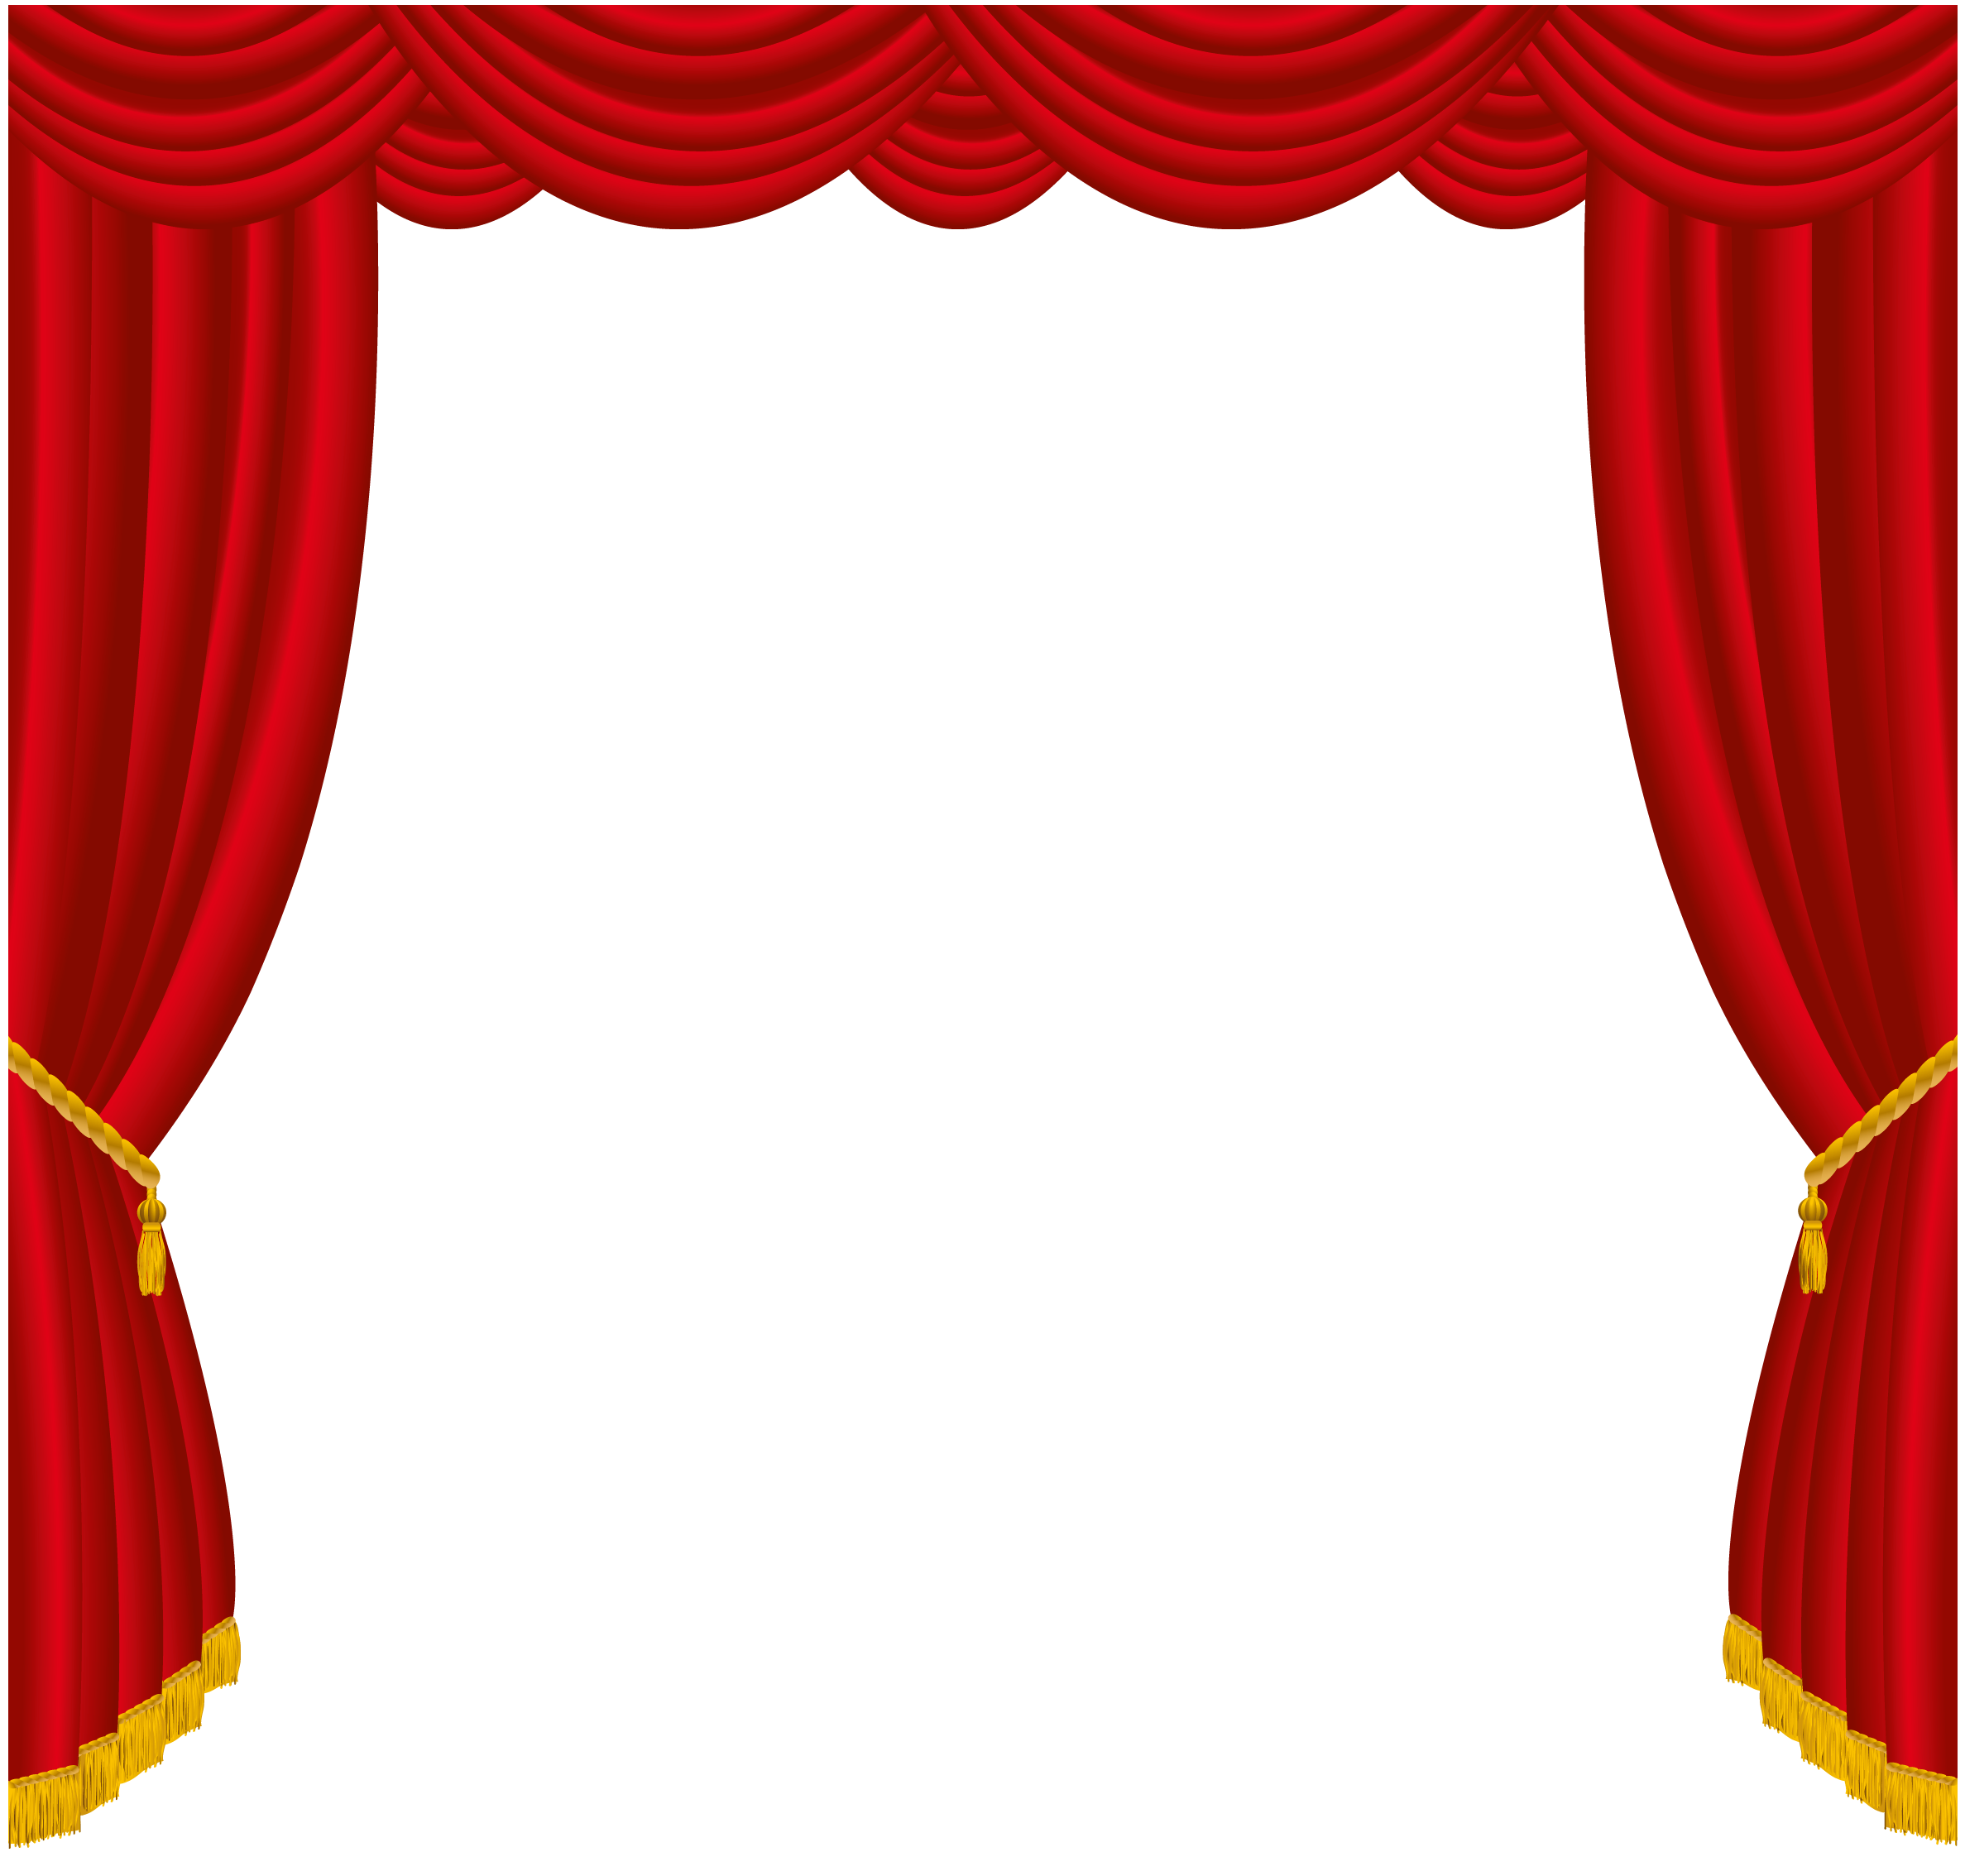 Transparent Red Curtains Decor PNG Clipart | BKS ...